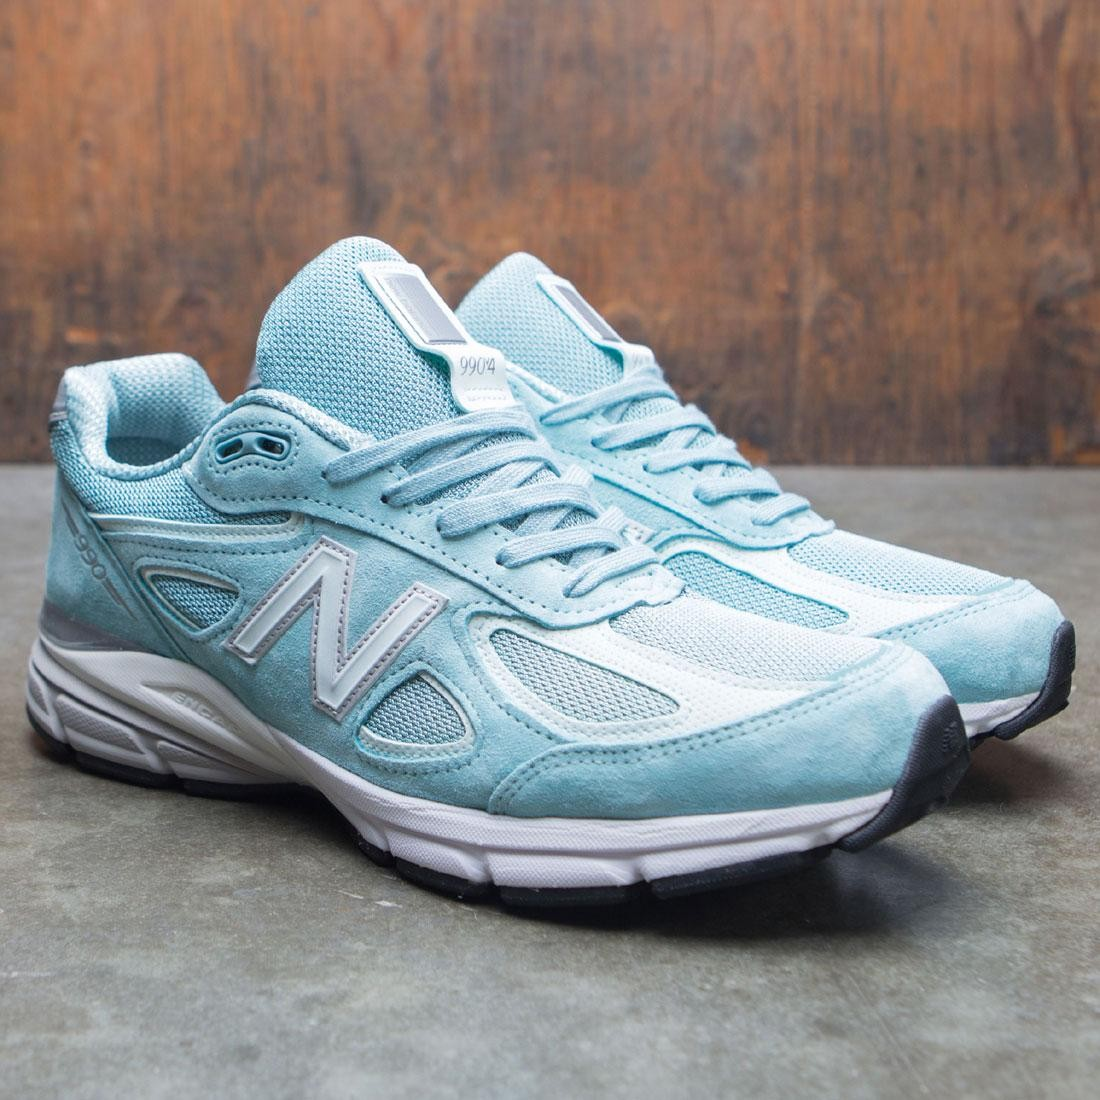 official photos a05ee 6abf2 New Balance Men 990v4 M990MS4 - Made In USA (teal / mineral sage / seafoam)